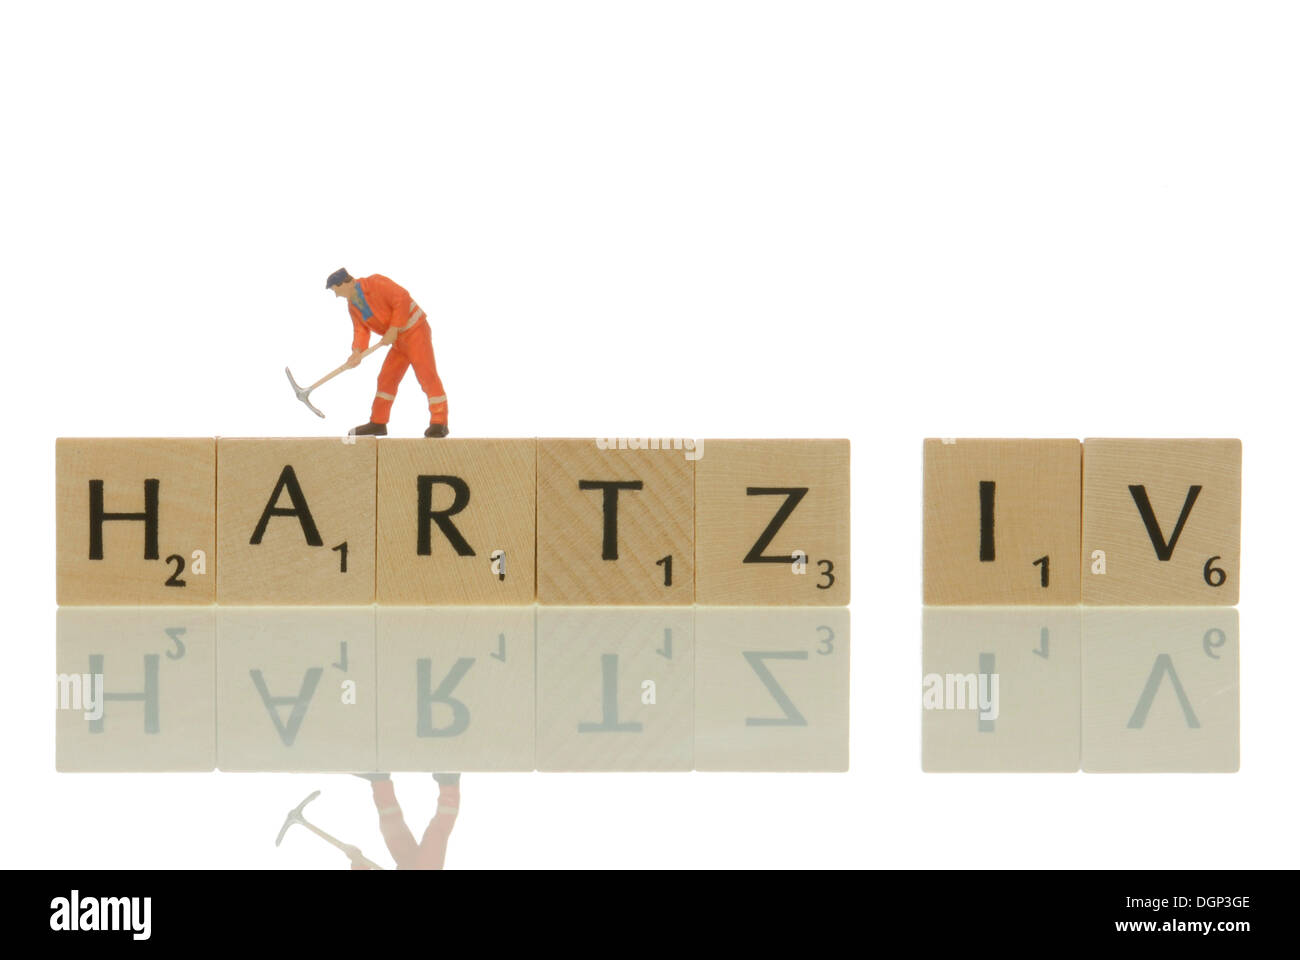 Figurine of contruction worker on the lettering 'Hartz IV', symbolic for Hartz IV building site - Stock Image